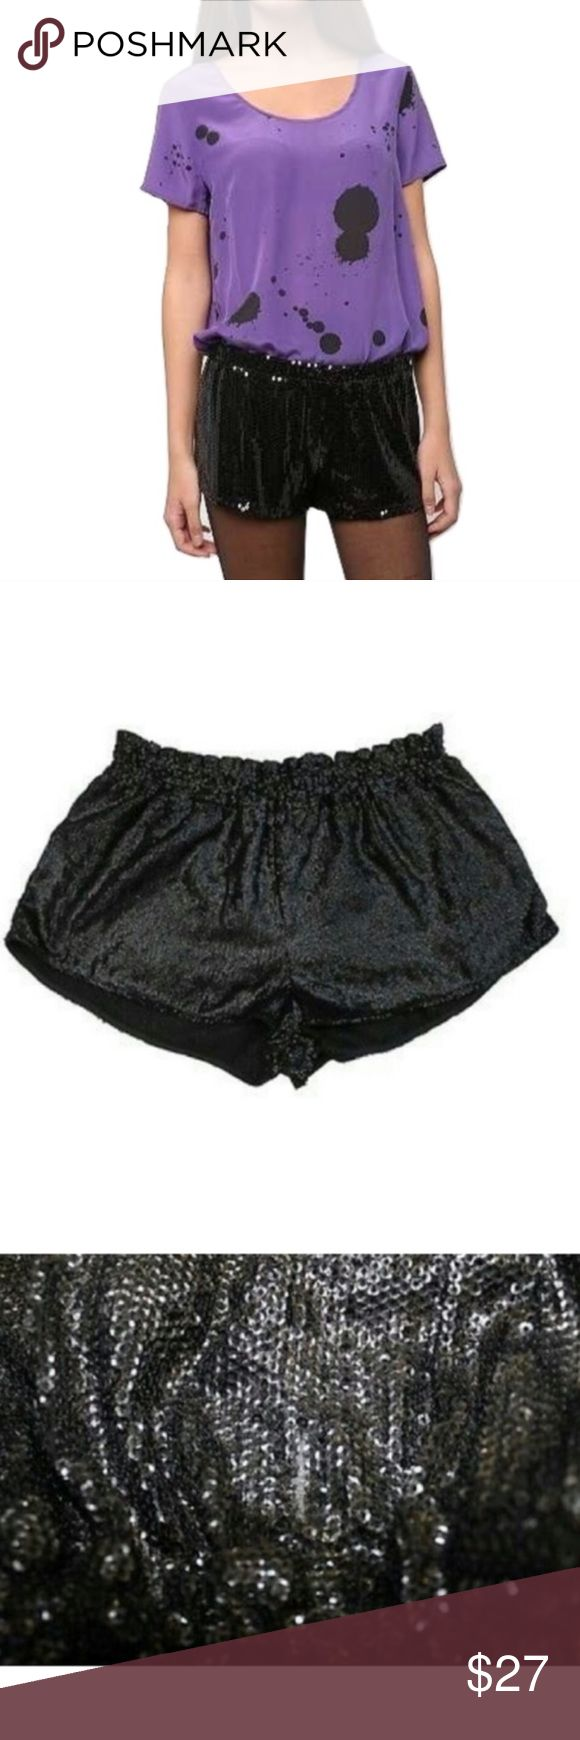 """🆕 Silence + Noise Black Sequin Tap Shorts NWOT 🔸Silence + Noise Sz M Black Sequin Tap Shorts NWOT🔸Size Medium🔸Sold at Urban Outfitters🔸Adorable black sequin tap shorts🔸 Size M🔸Made in the USA 🔸Semi sheer🔸Elastic waist🔸Length 10""""🔸Black lightweight lining🔸 These shorts are super versatile🔸NWOT Urban Outfitters Shorts"""